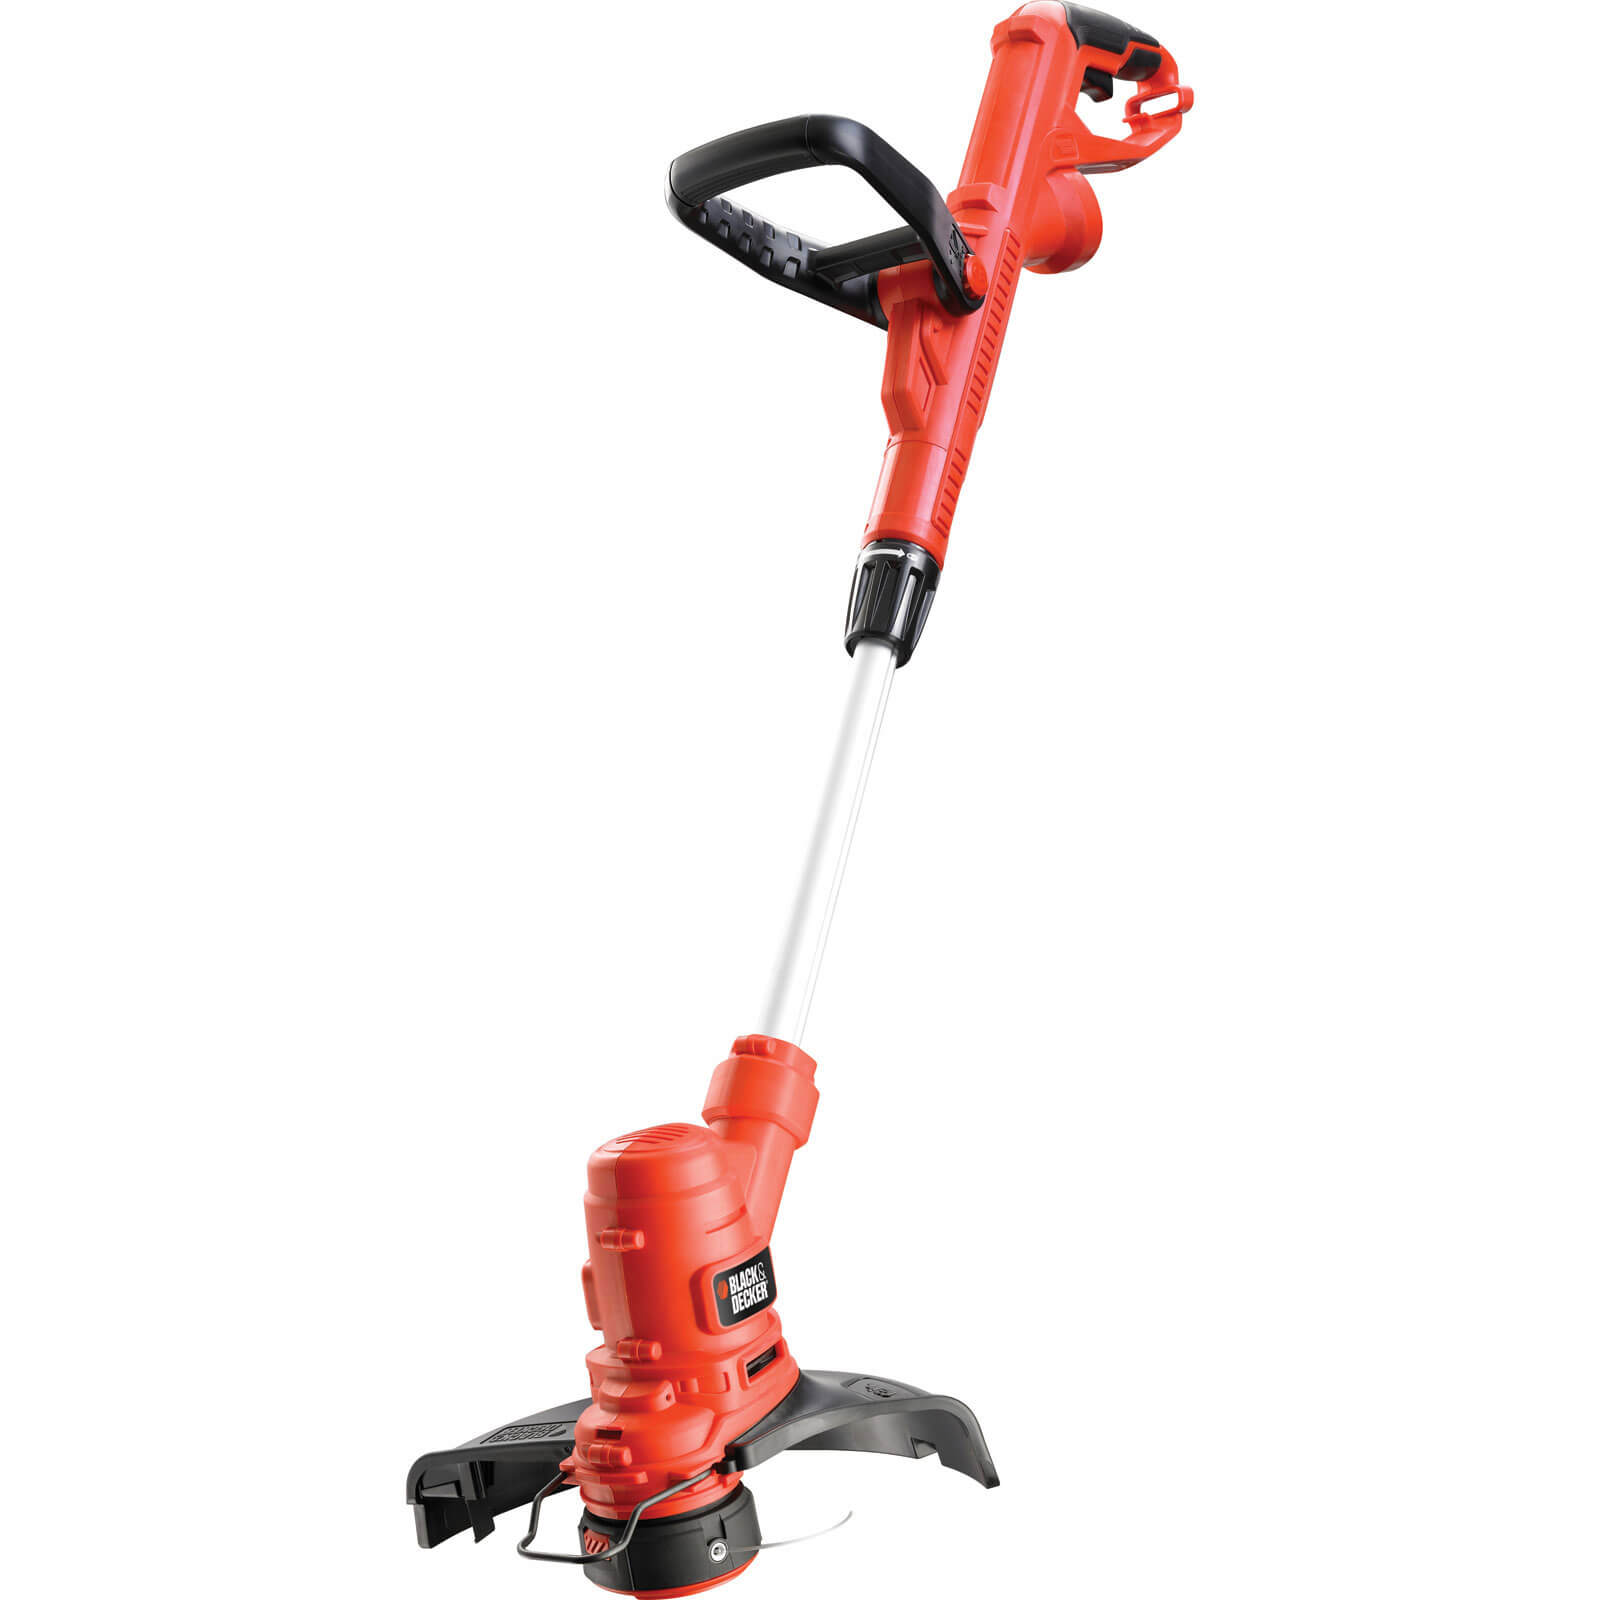 Black & Decker ST4525 Telescopic Grass Trimmer 250mm Cut Width 450w 240v Compatible with 3 in 1 Mower Plus FREE Spare Spool & Line Worth £5.95